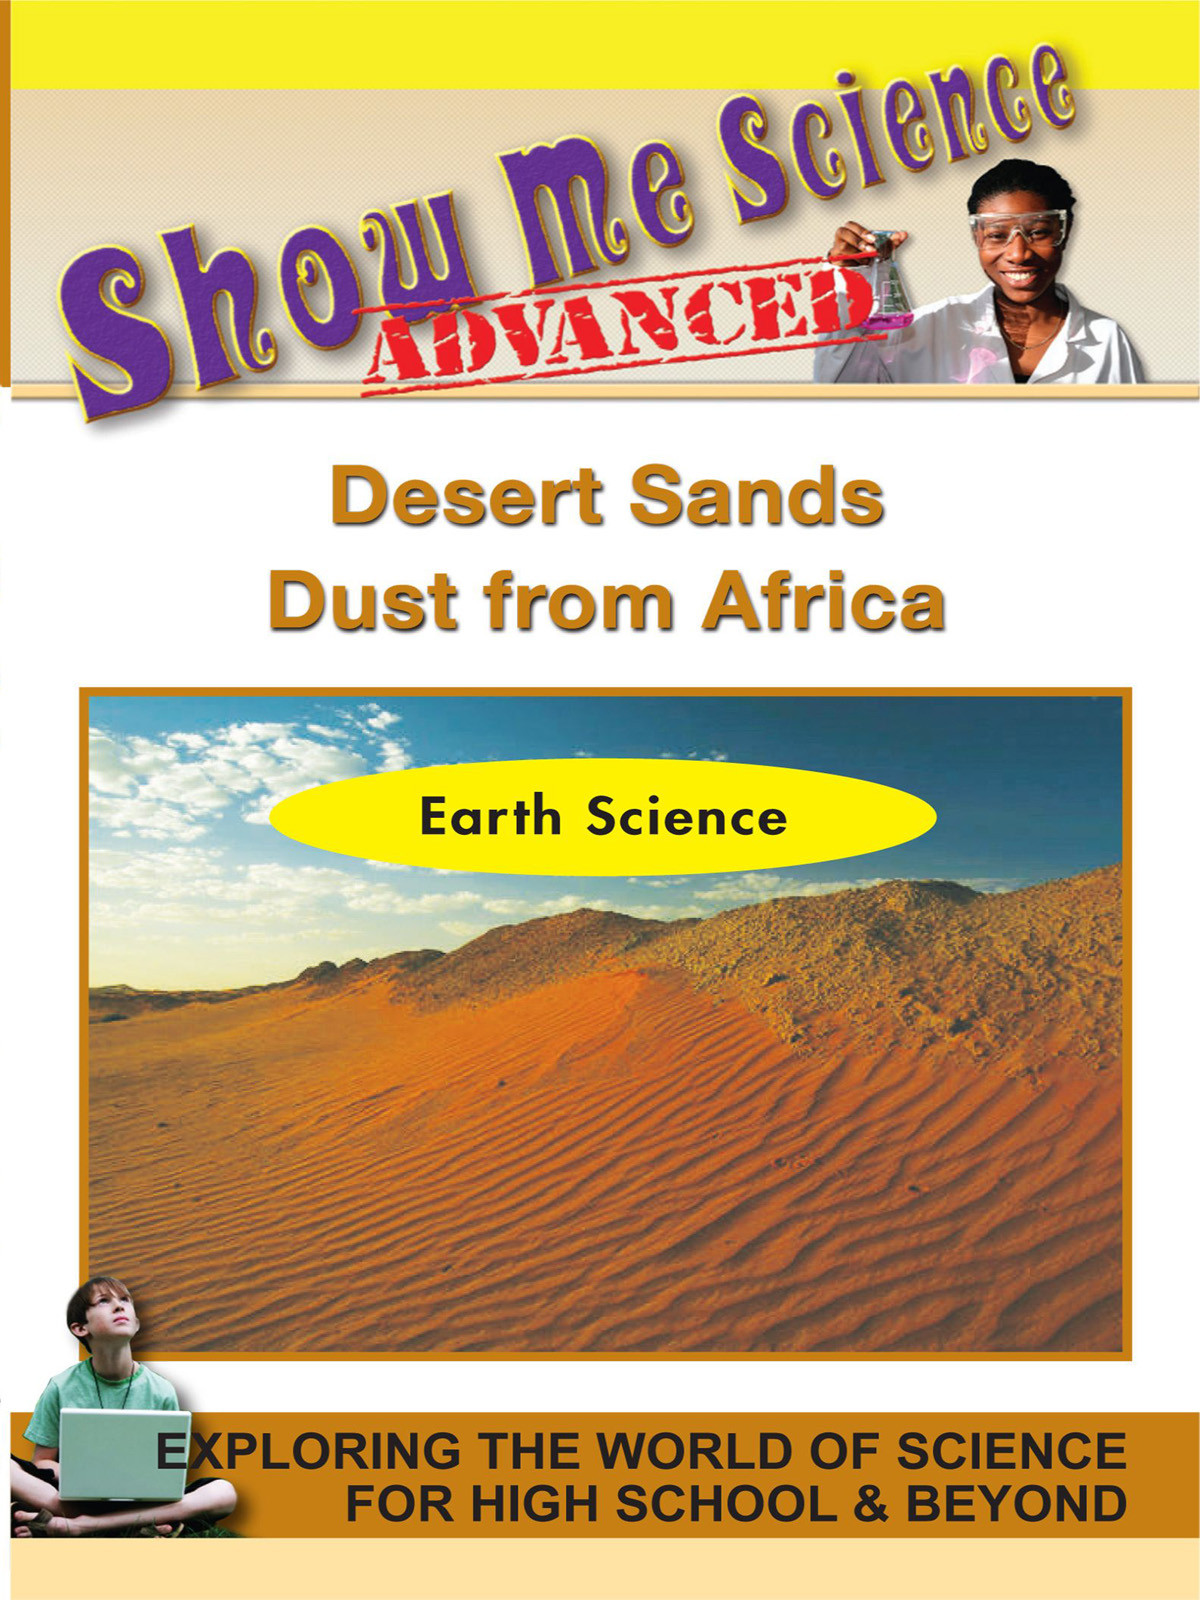 K4629 - Earth Science Desert Sands  Dust from Africa